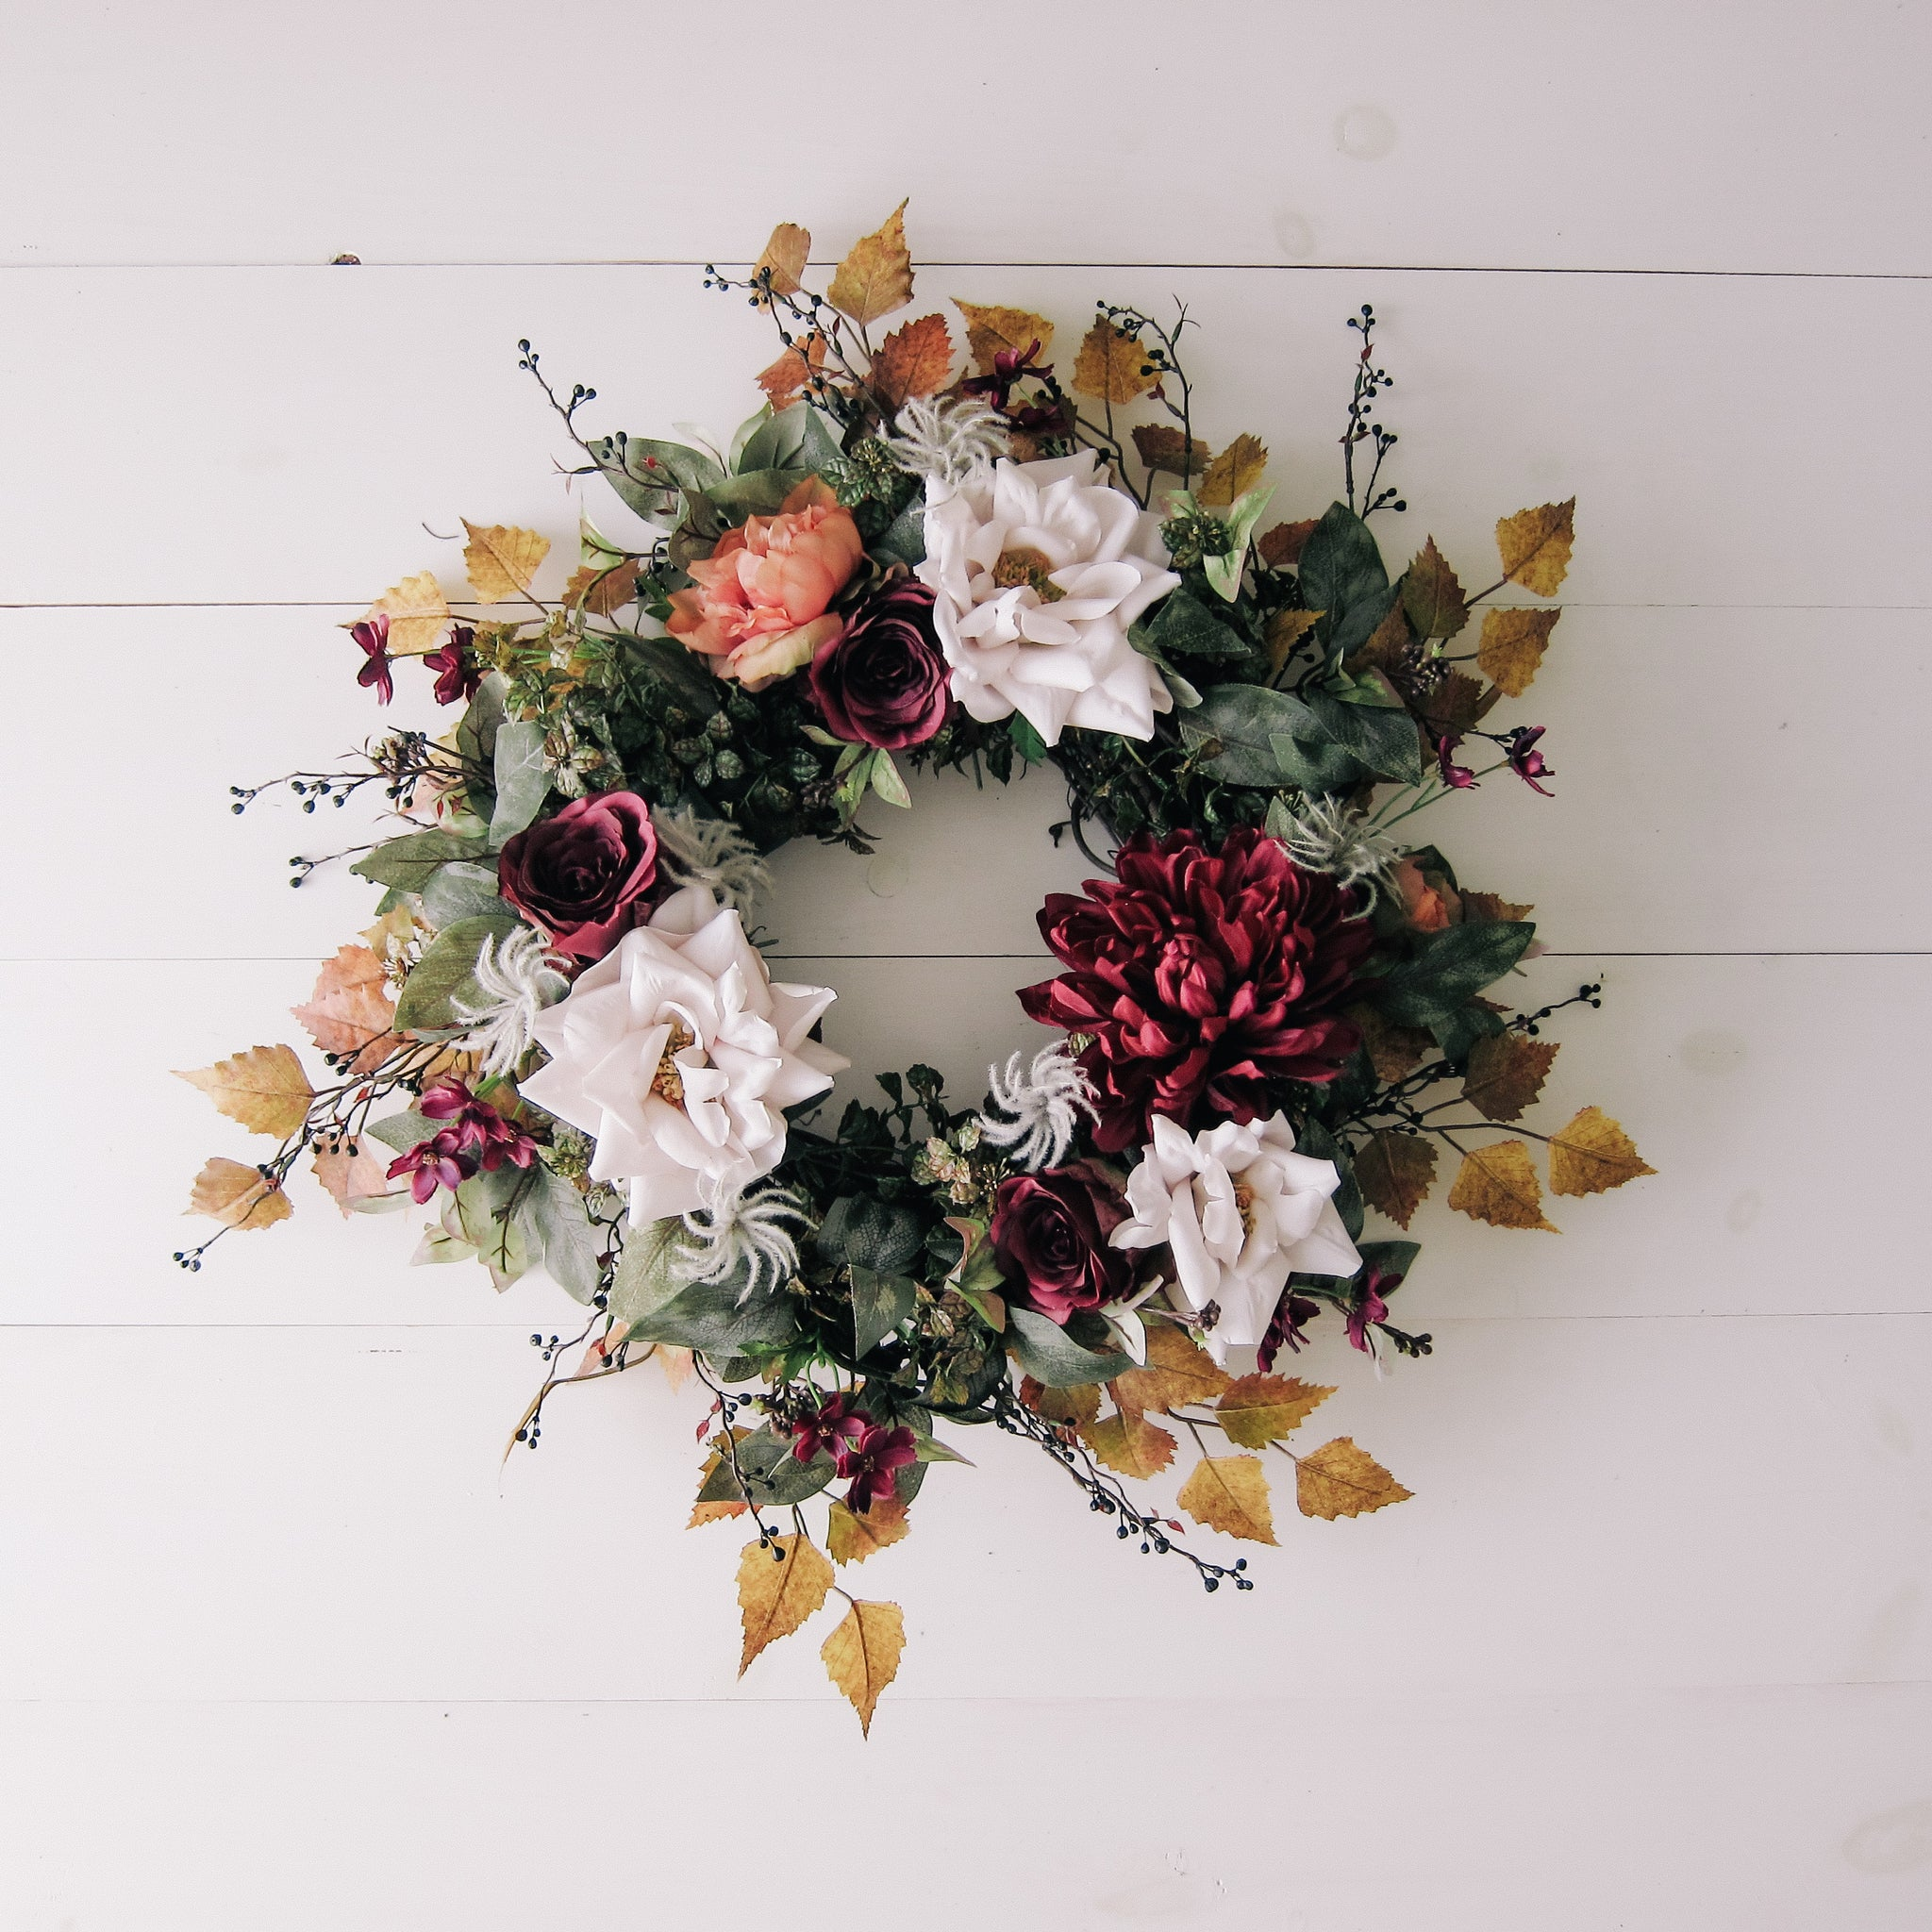 Fall Vibrant Floral Wreath